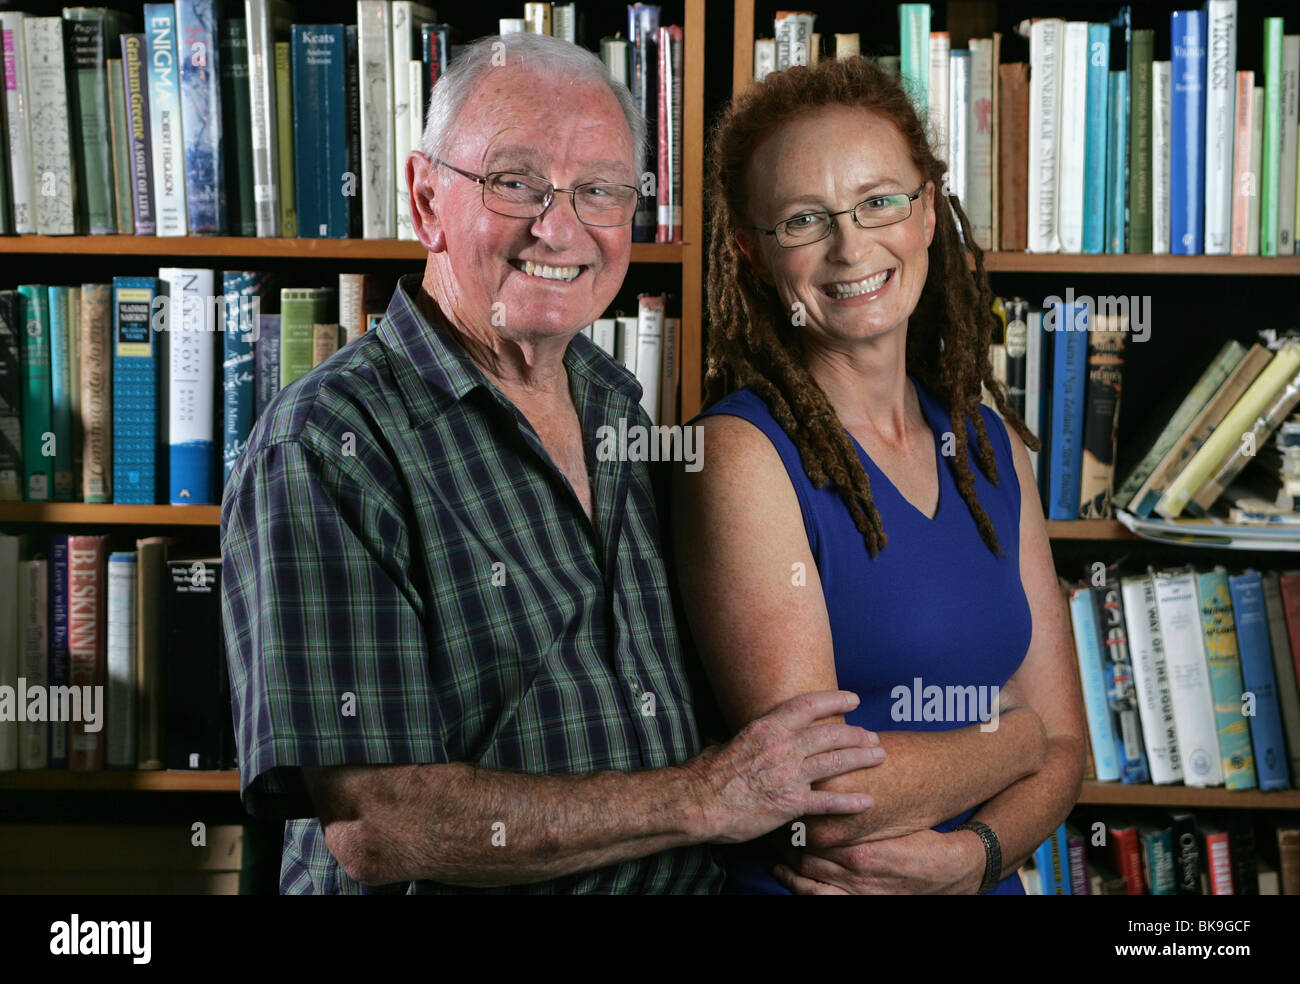 New Zealand's most famous fiction writer Maurice Gee, at home in Nelson with his daughter Emily, also an author. - Stock Image